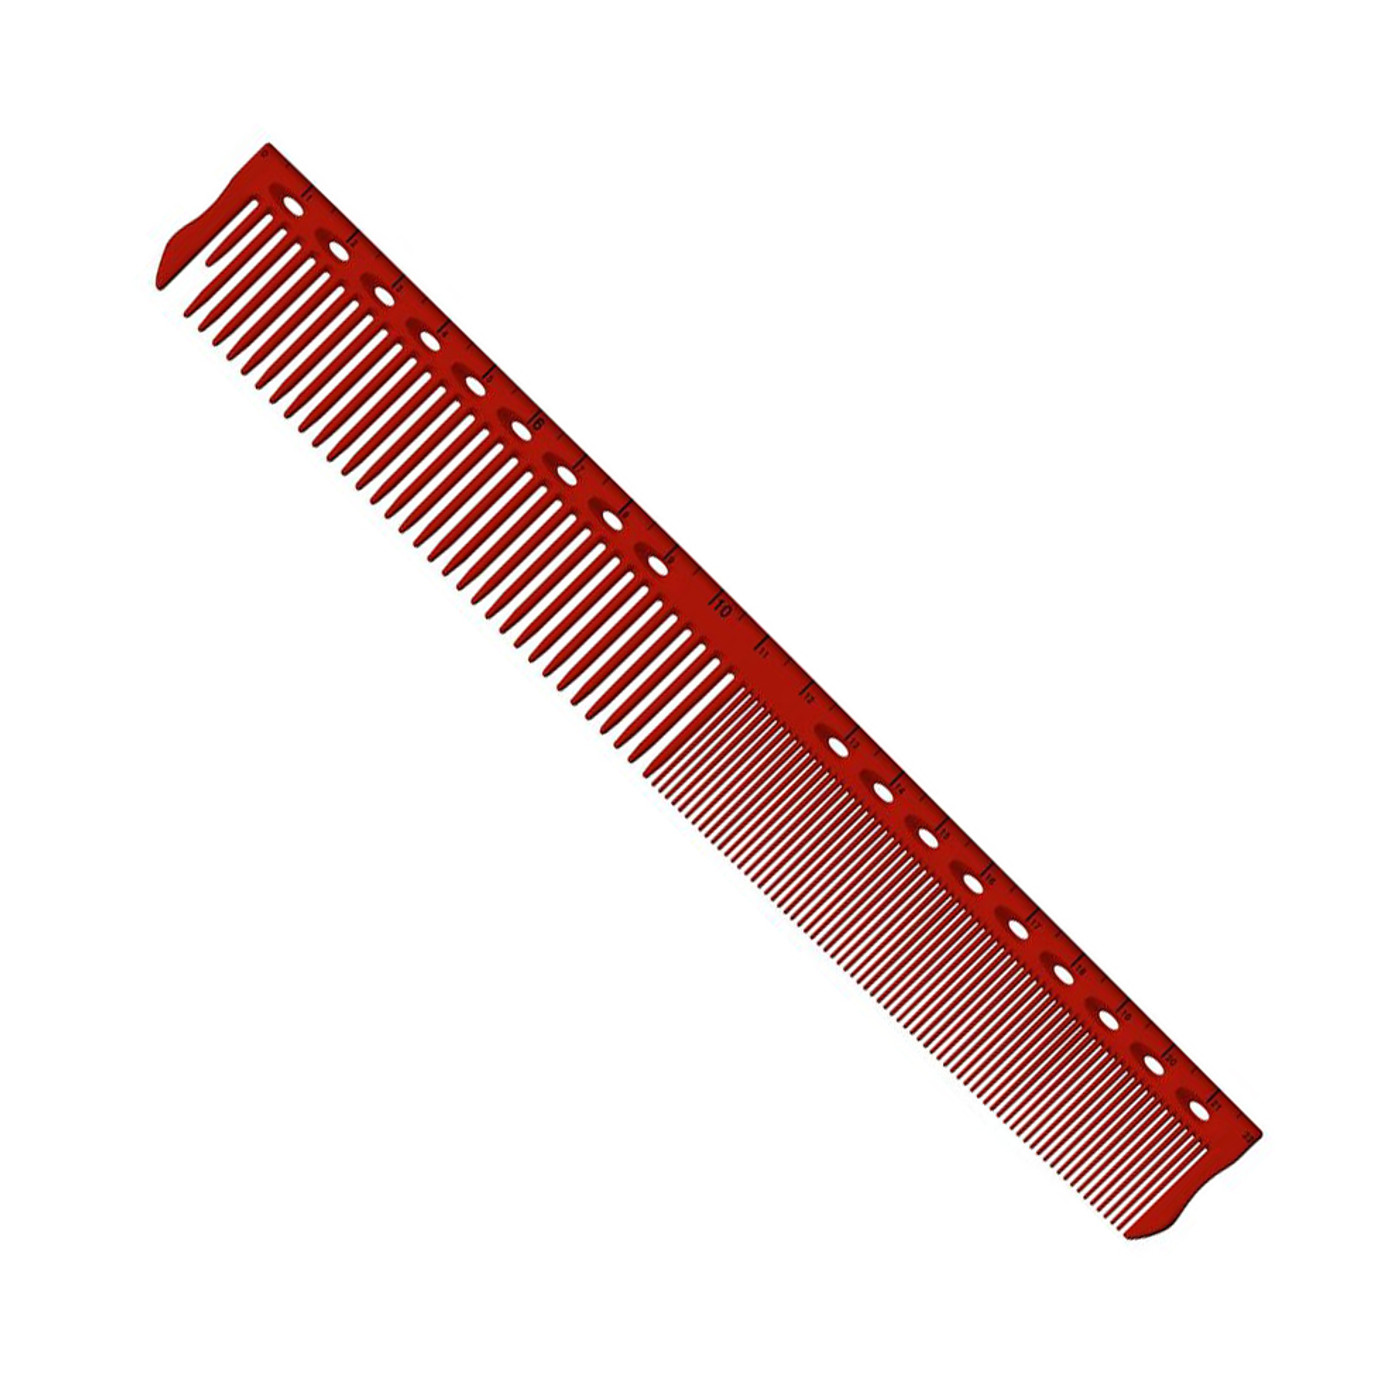 YS Park G45 Cutting Guide Comb by YS Park Professional